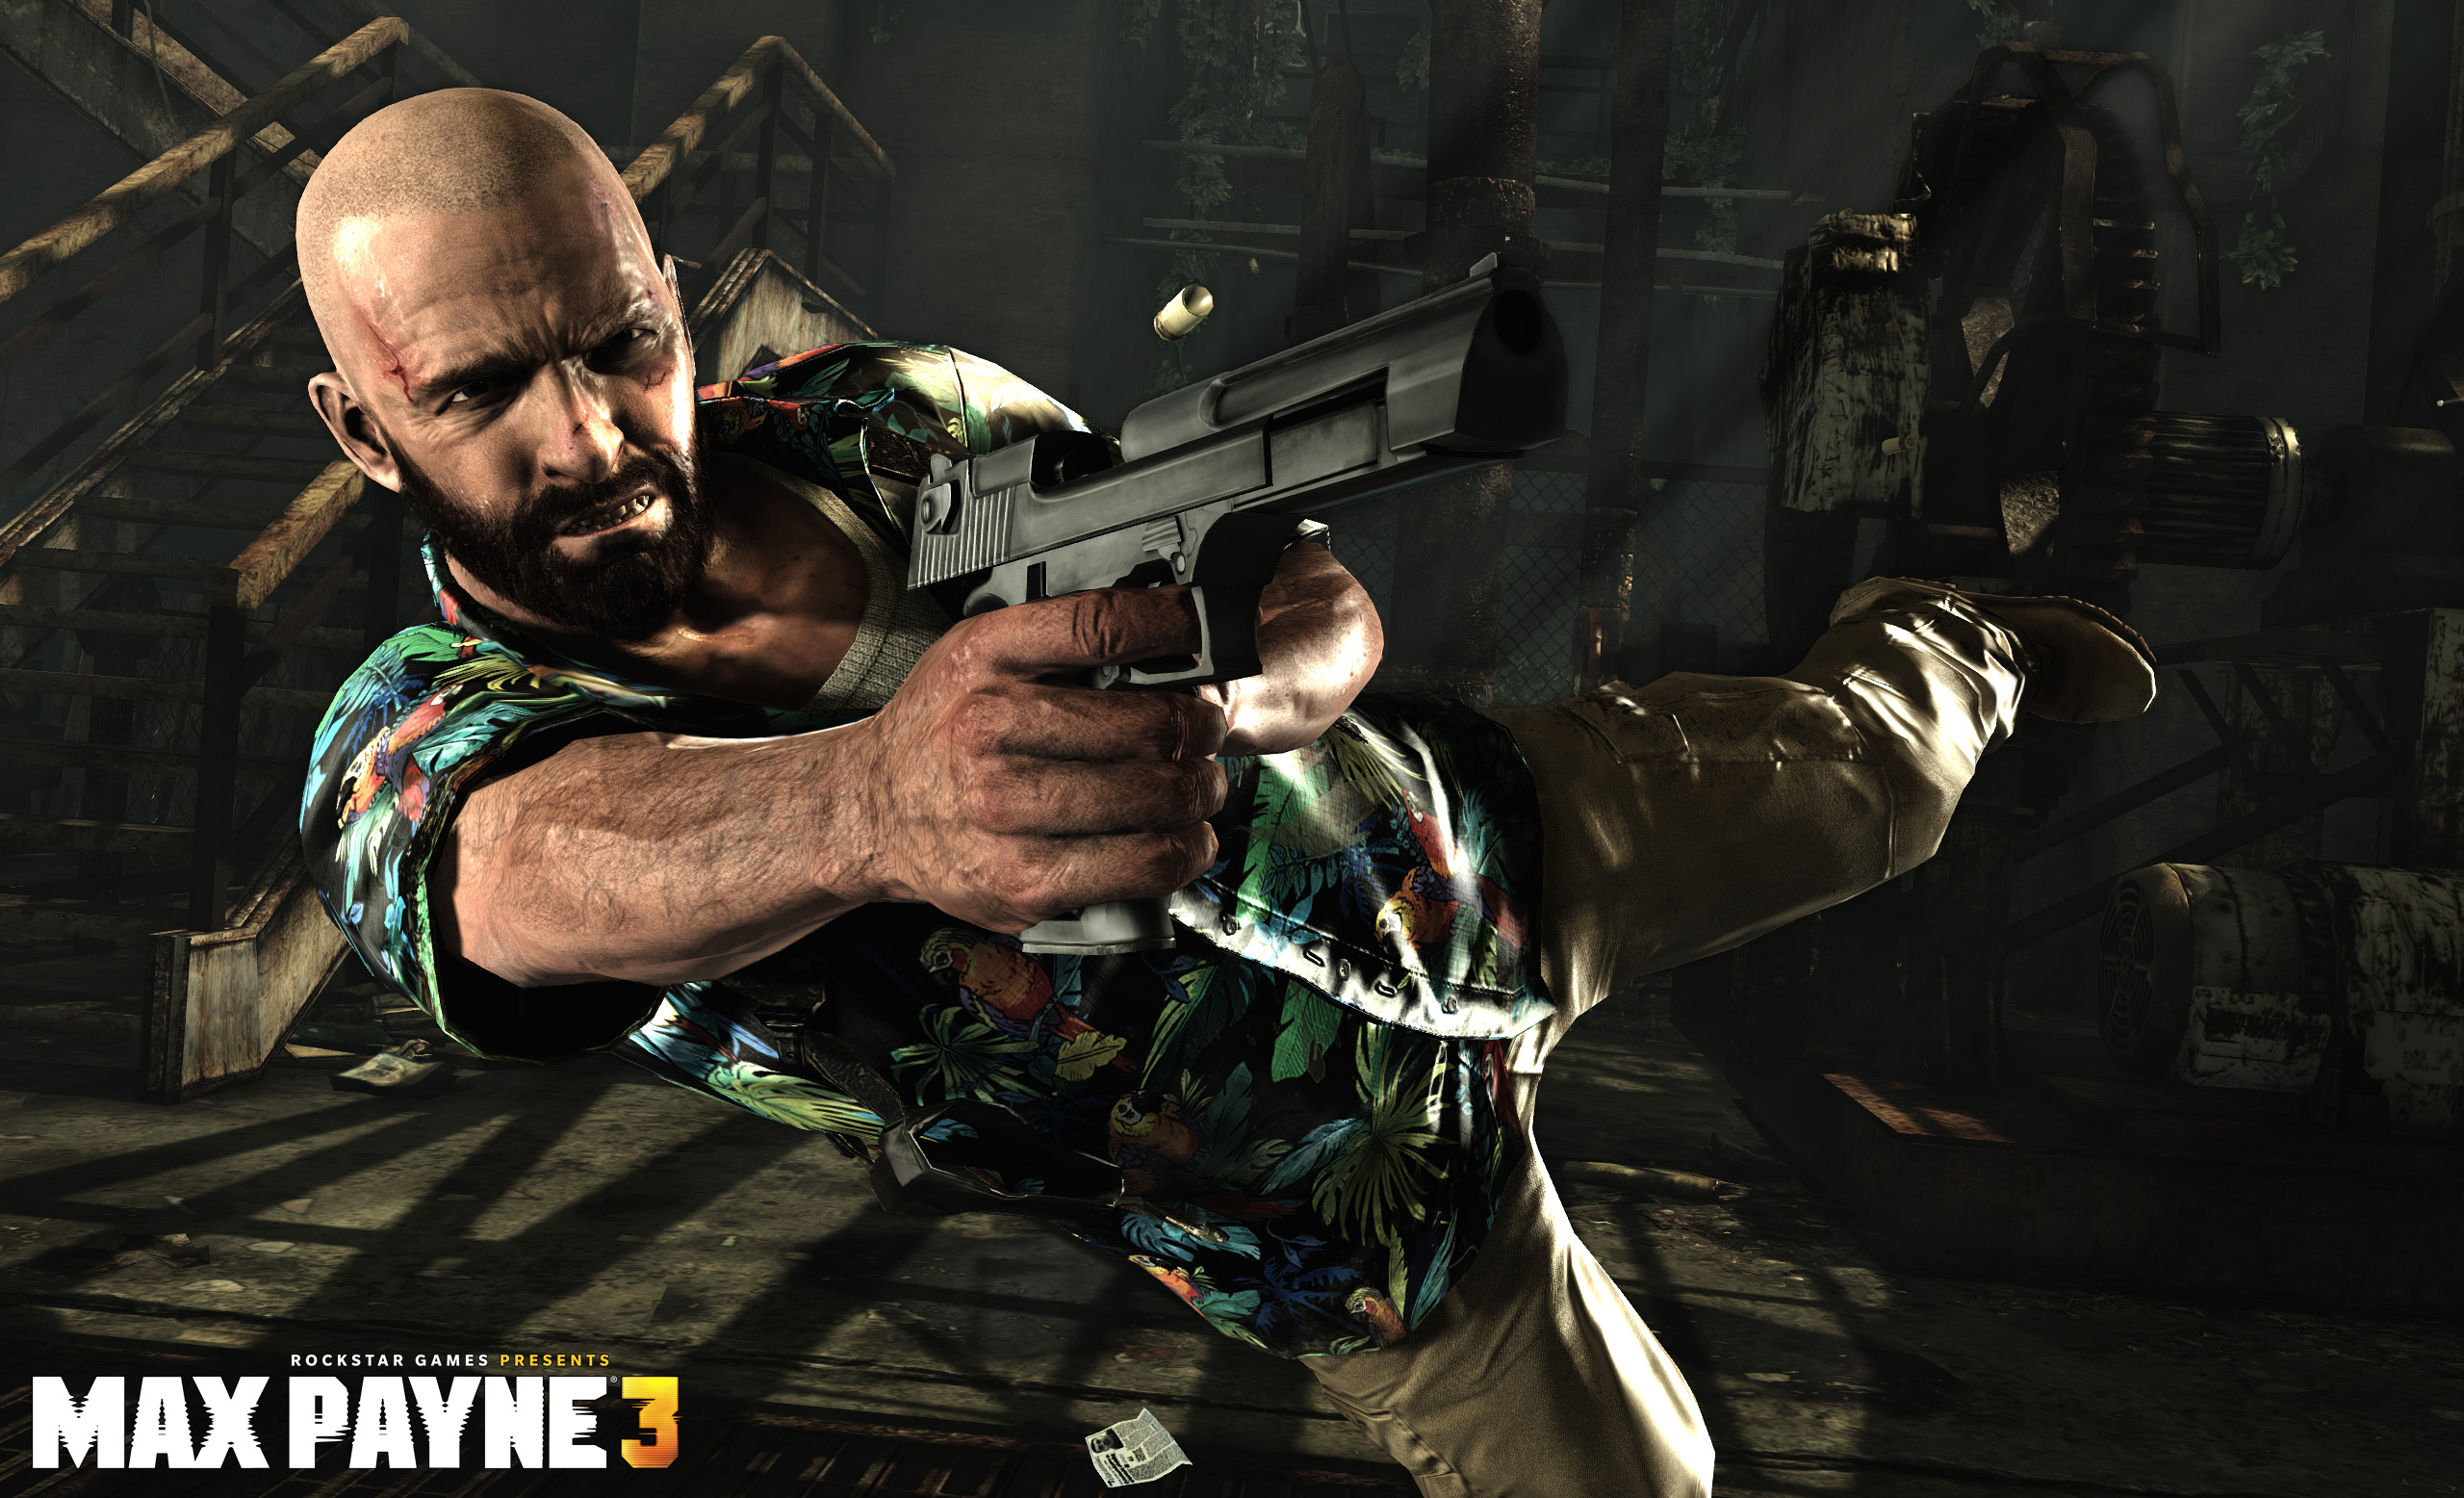 Pc Max Payne 3 Page 11 Beyond3d Forum